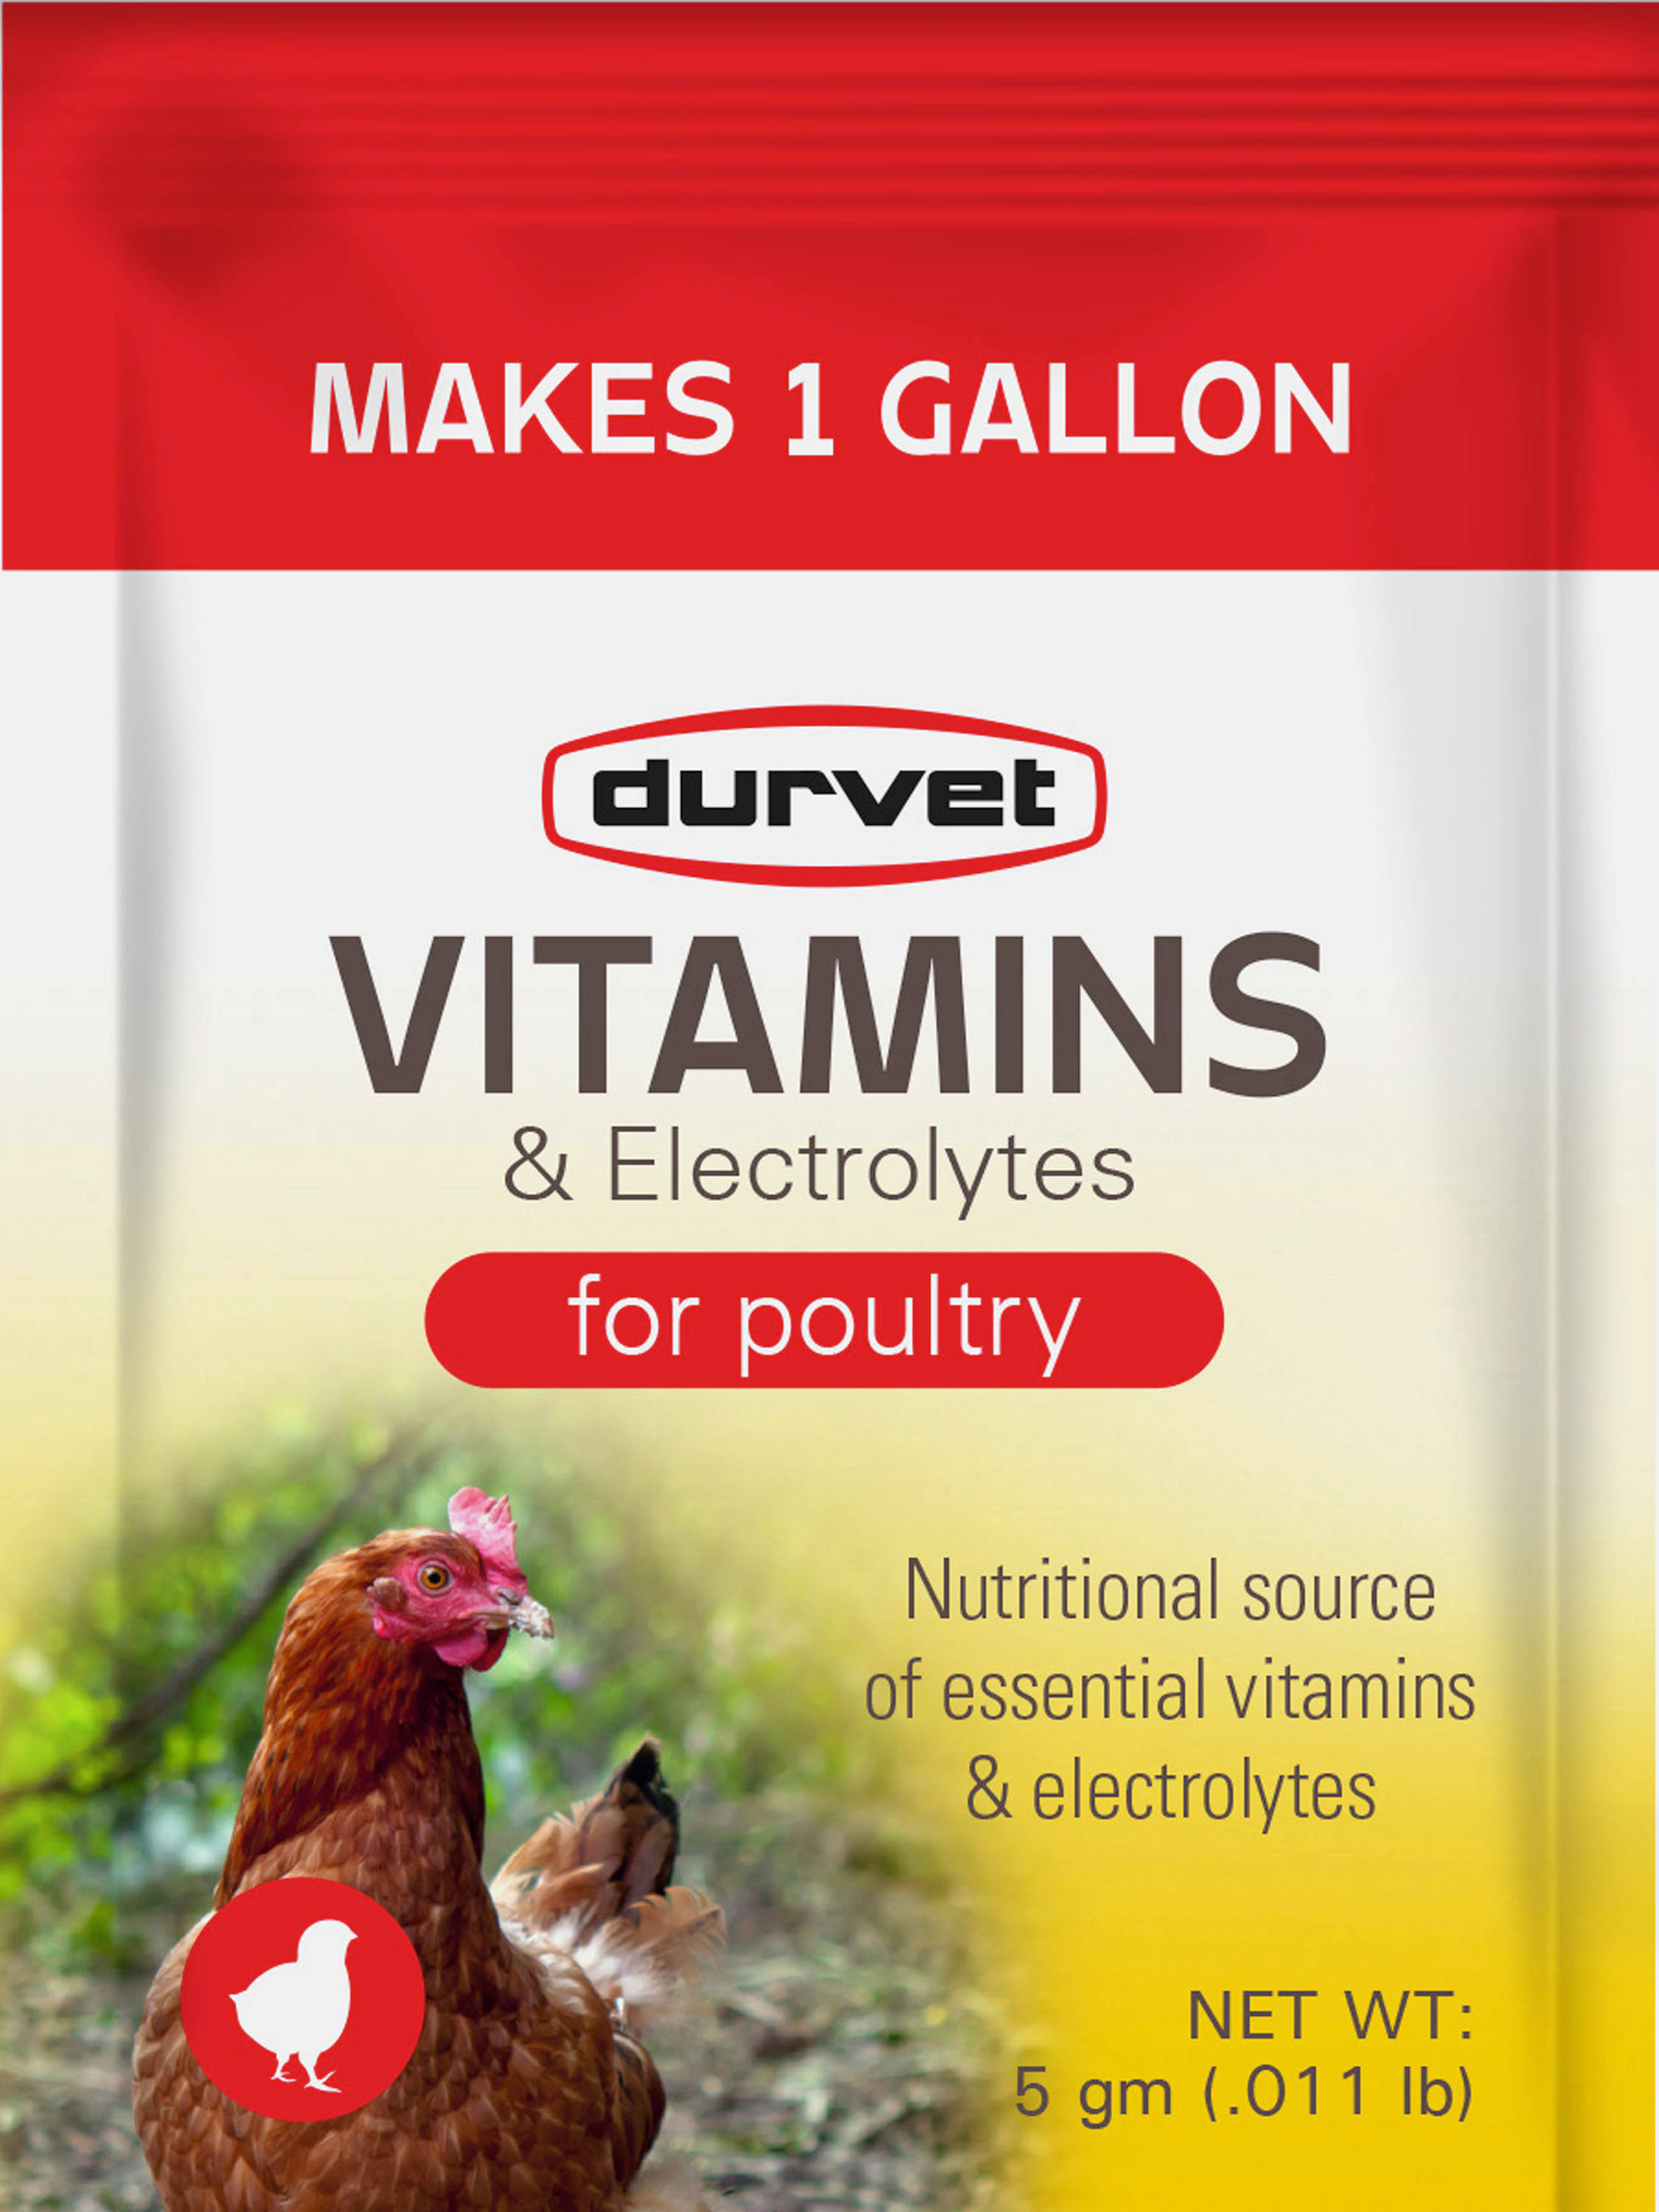 Durvet Inc D - Vitamins & Electrolytes for Livestock and Poultry